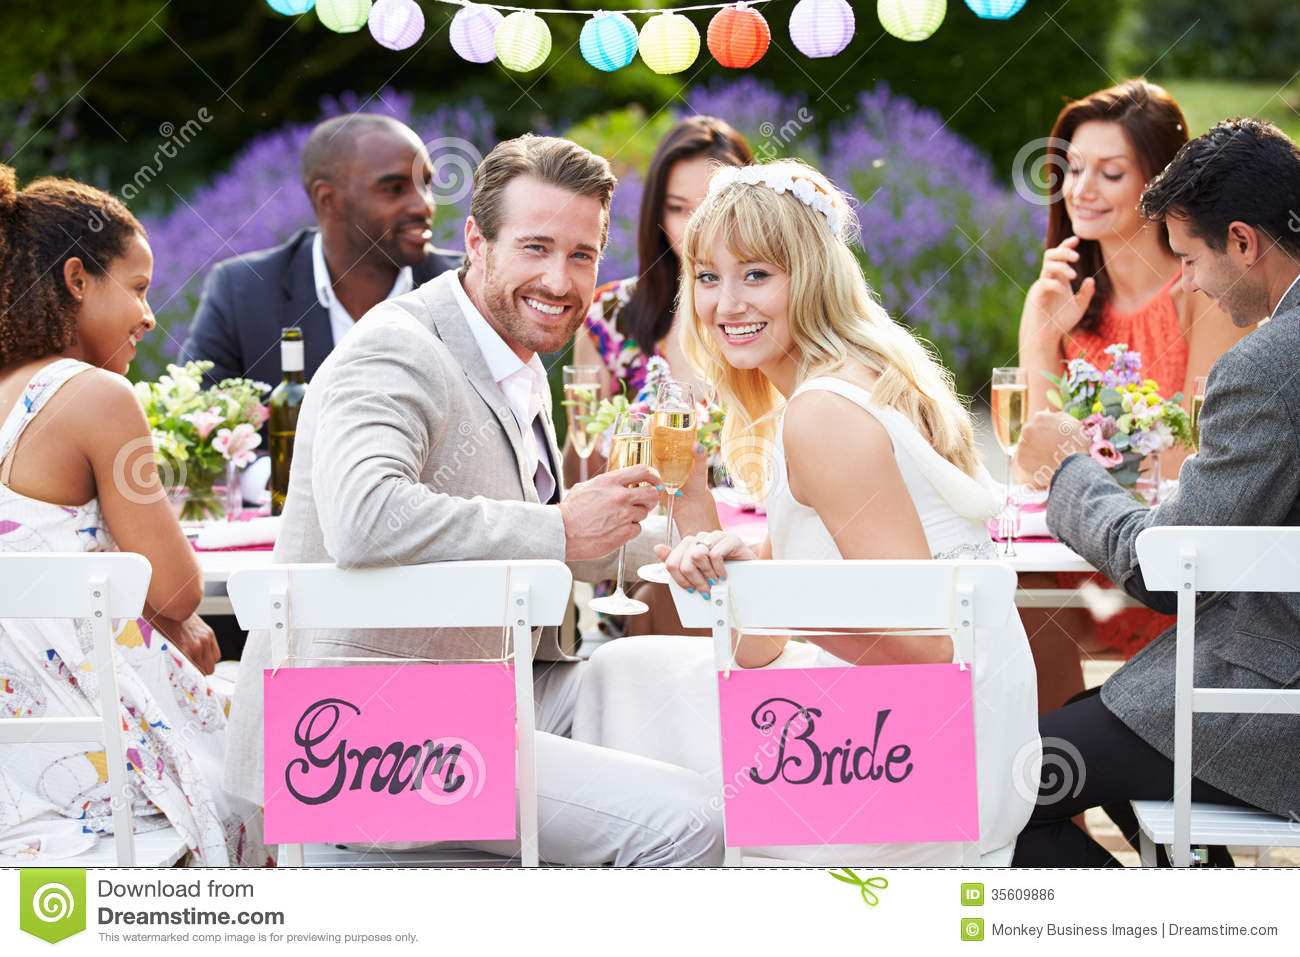 Indoor Wedding Venue Royalty Free Stock Photo: Bride And Groom Enjoying Meal At Wedding Reception Stock